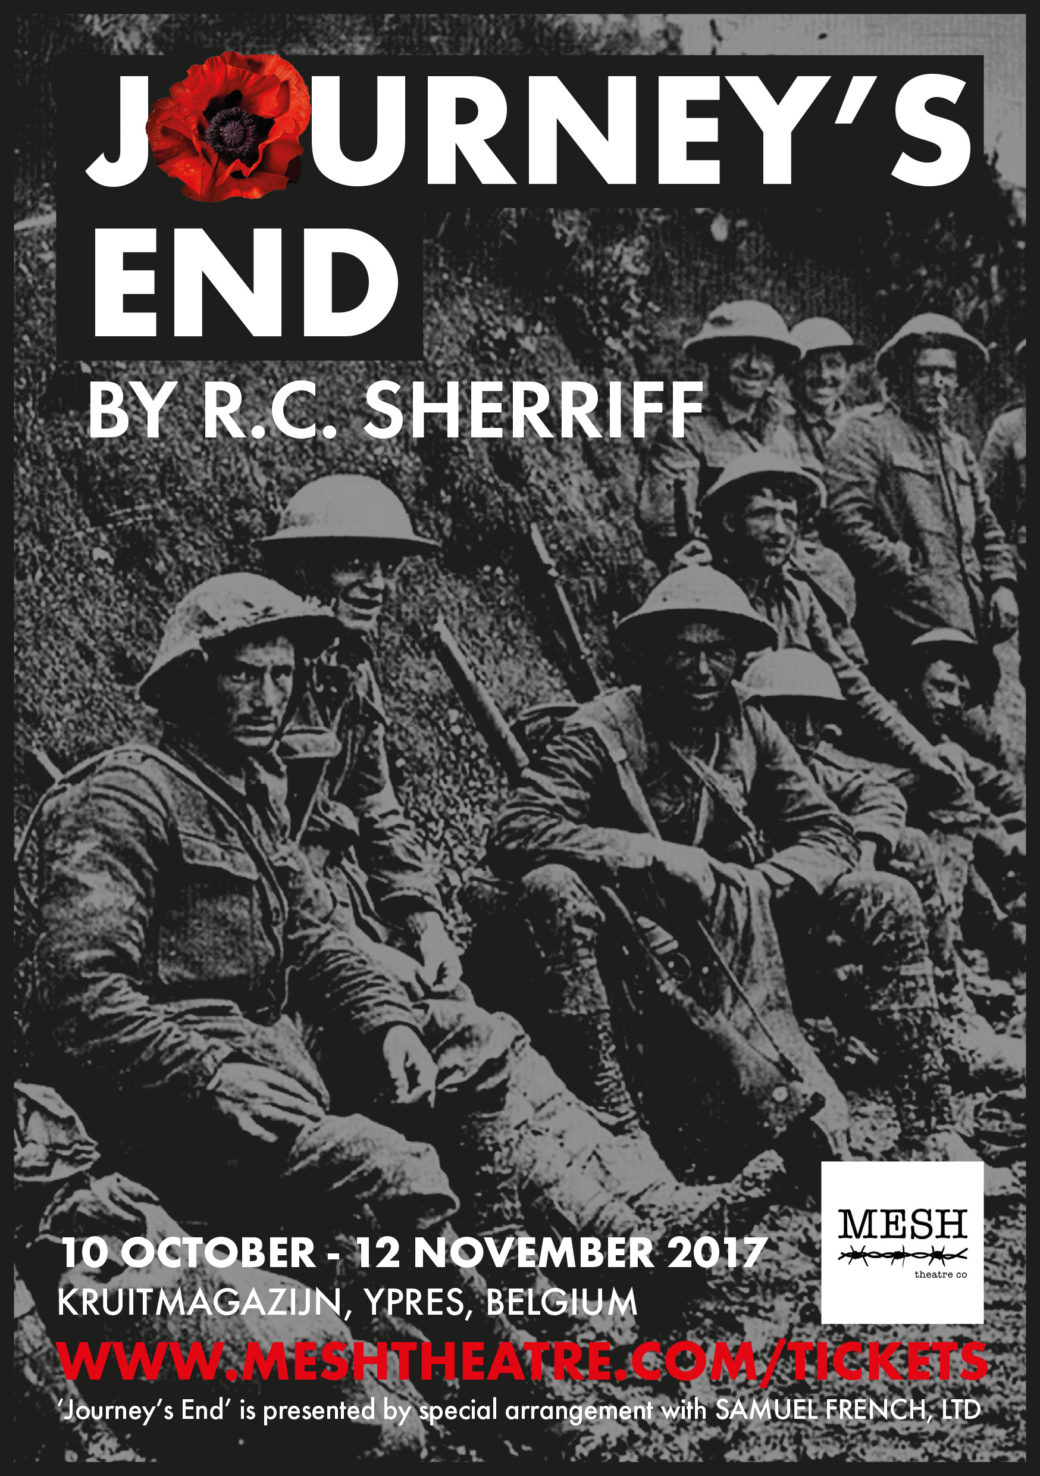 english journeys end Based on rc sheriff's celebrated play about the horror of life in the first world war  trenches, journey's end features some of the finest british.